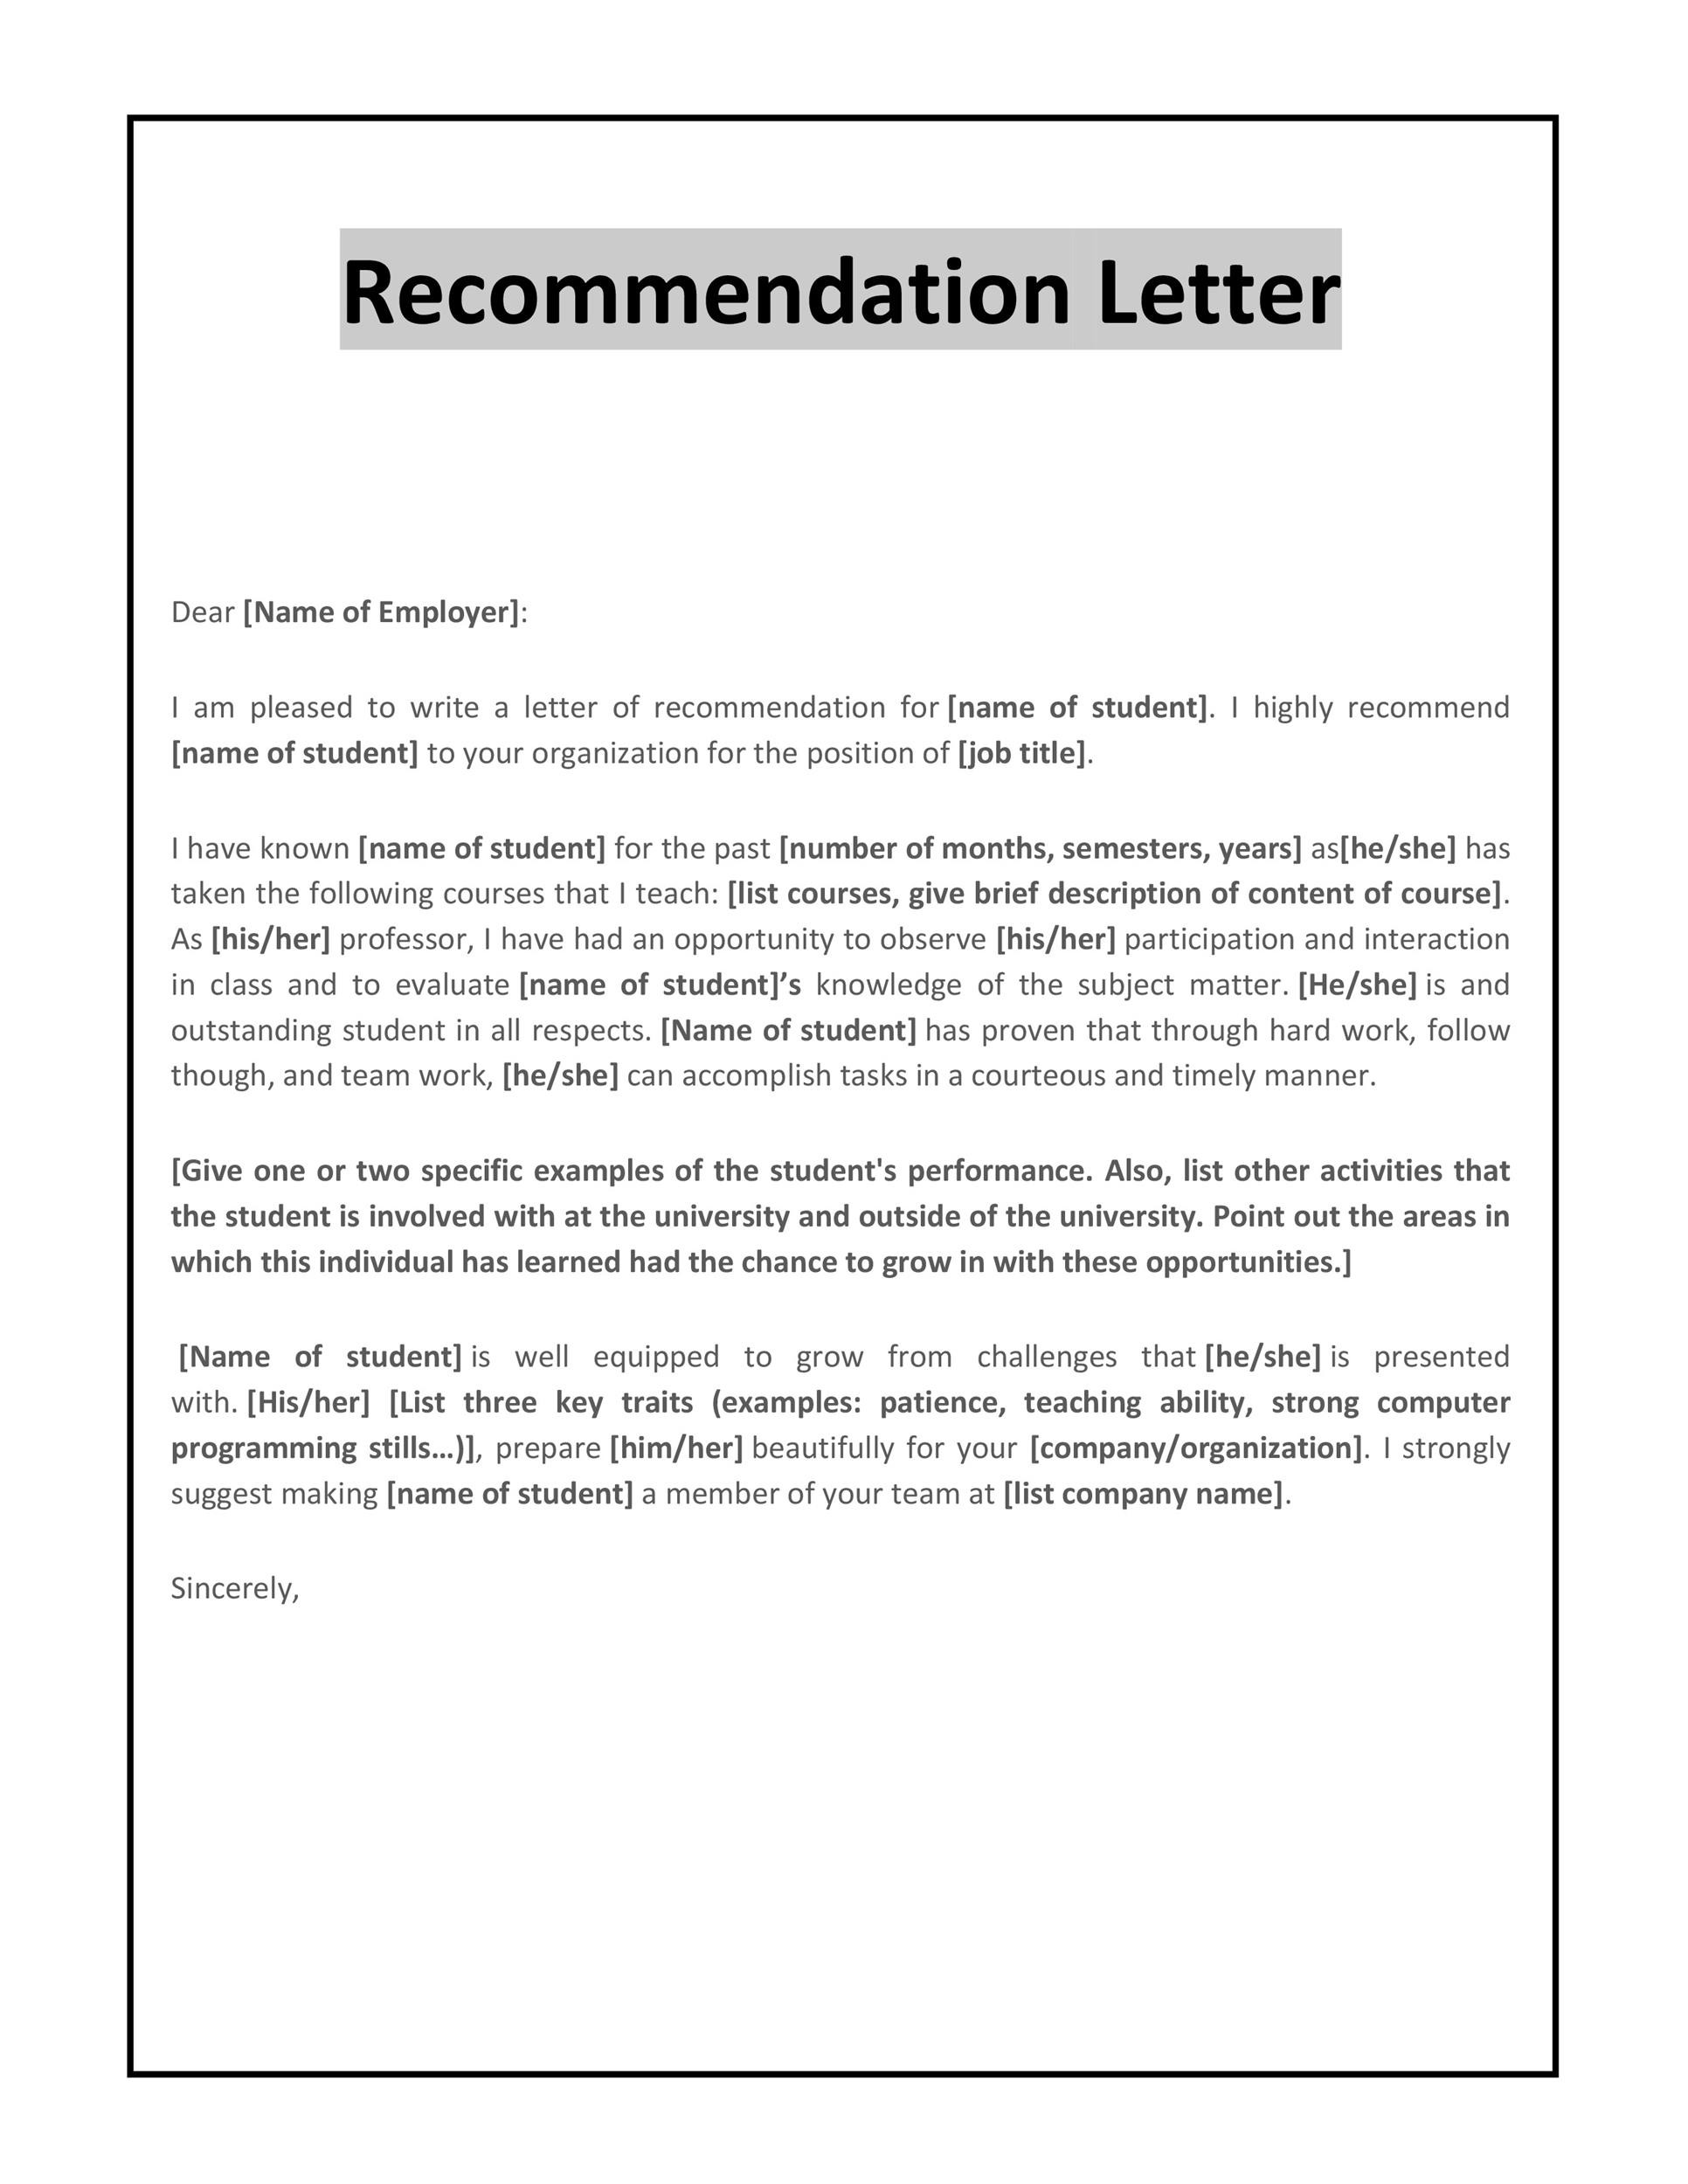 How to choose someone to write a letter of recommendation